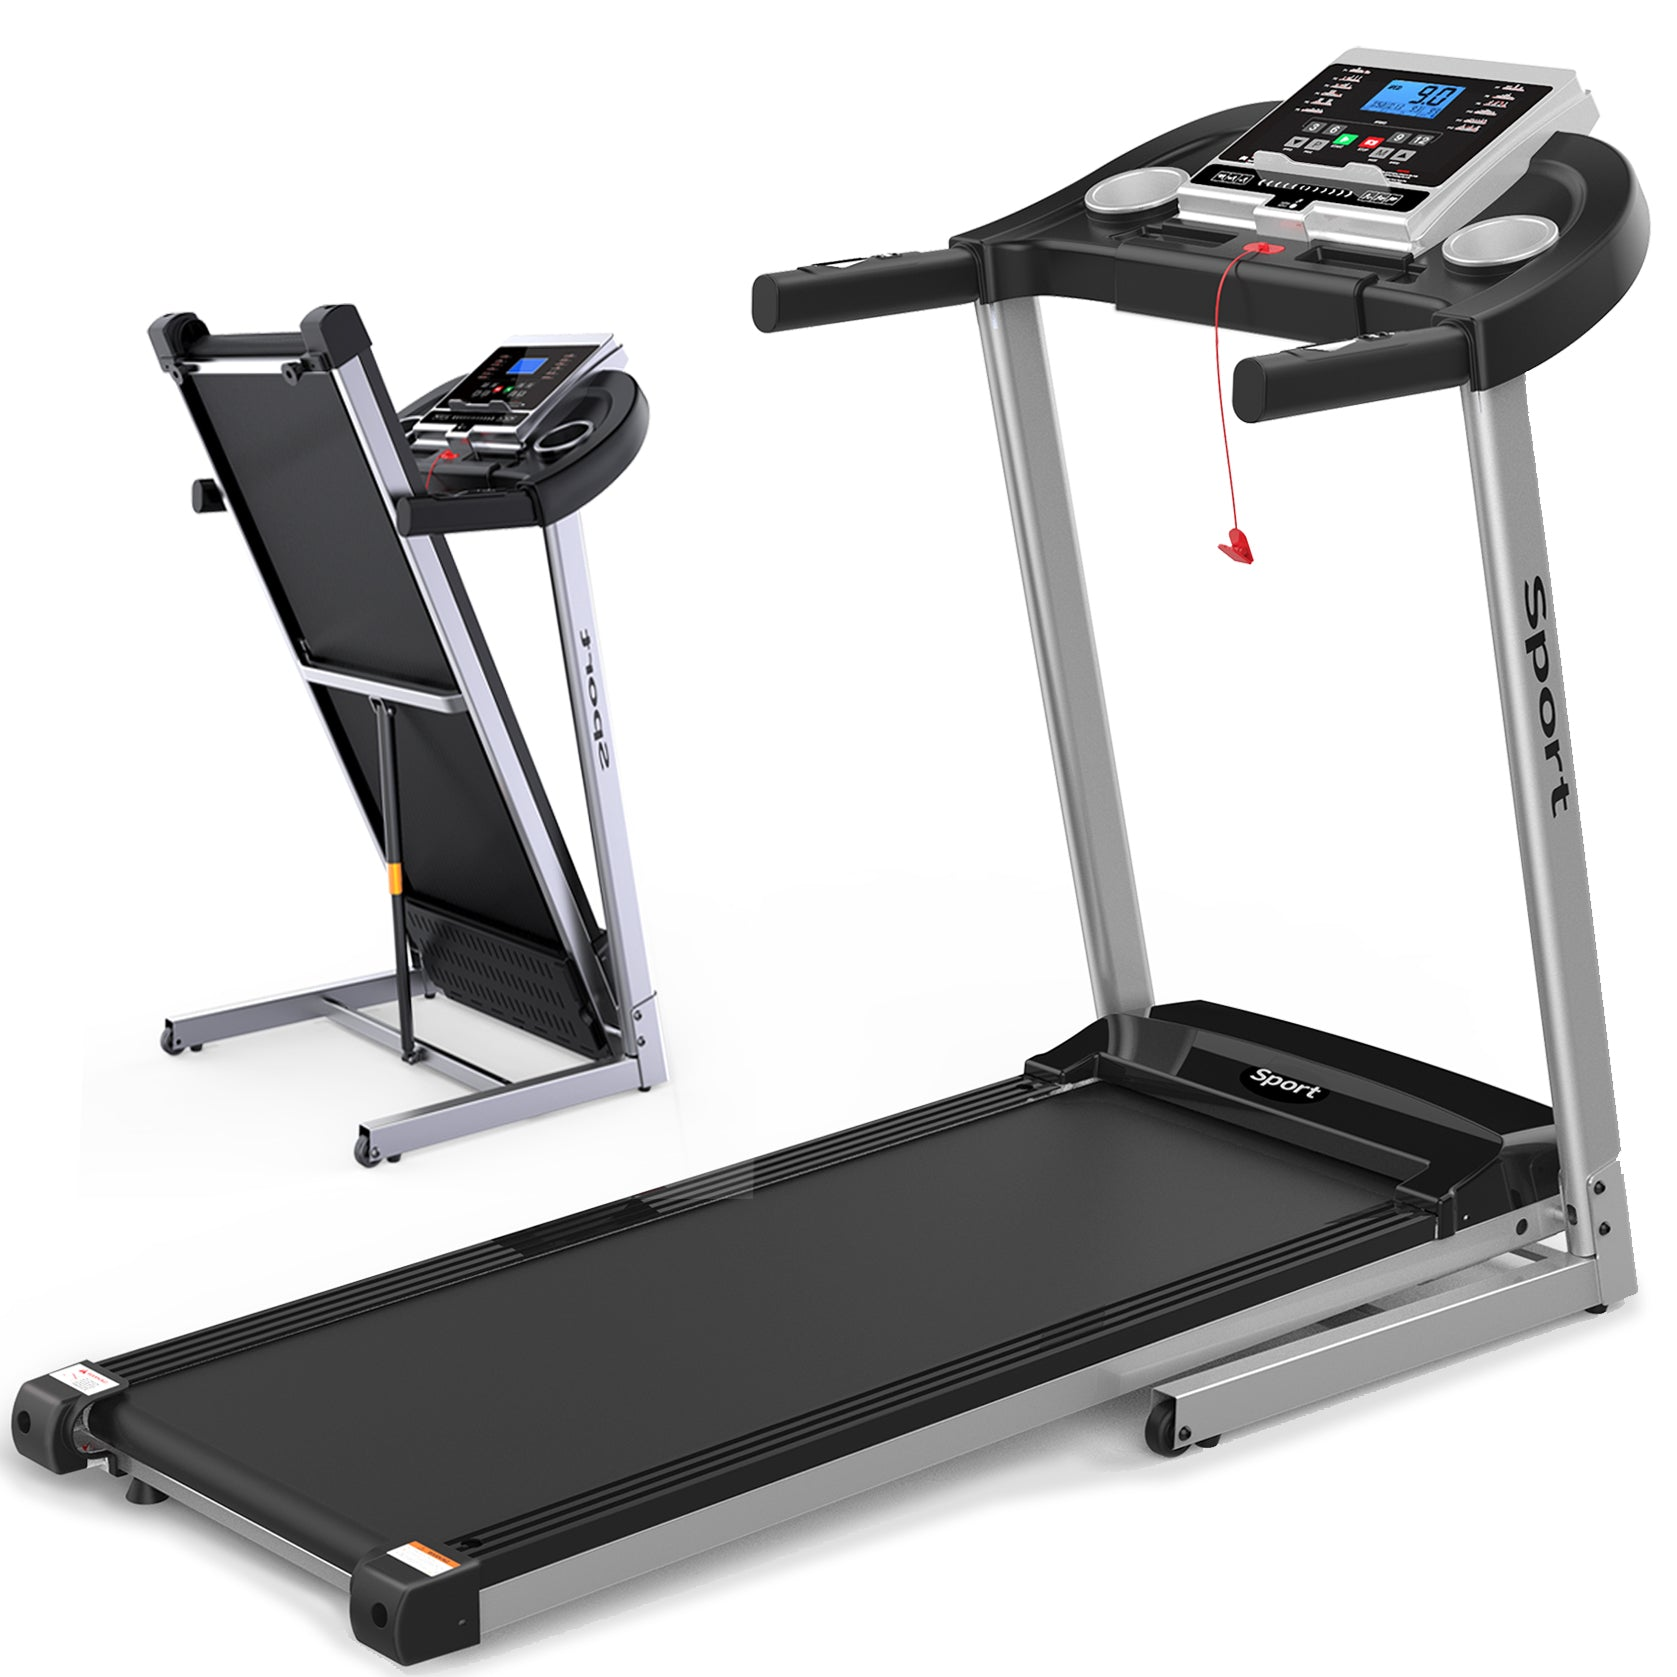 Folding Electric Treadmill For Home Workout